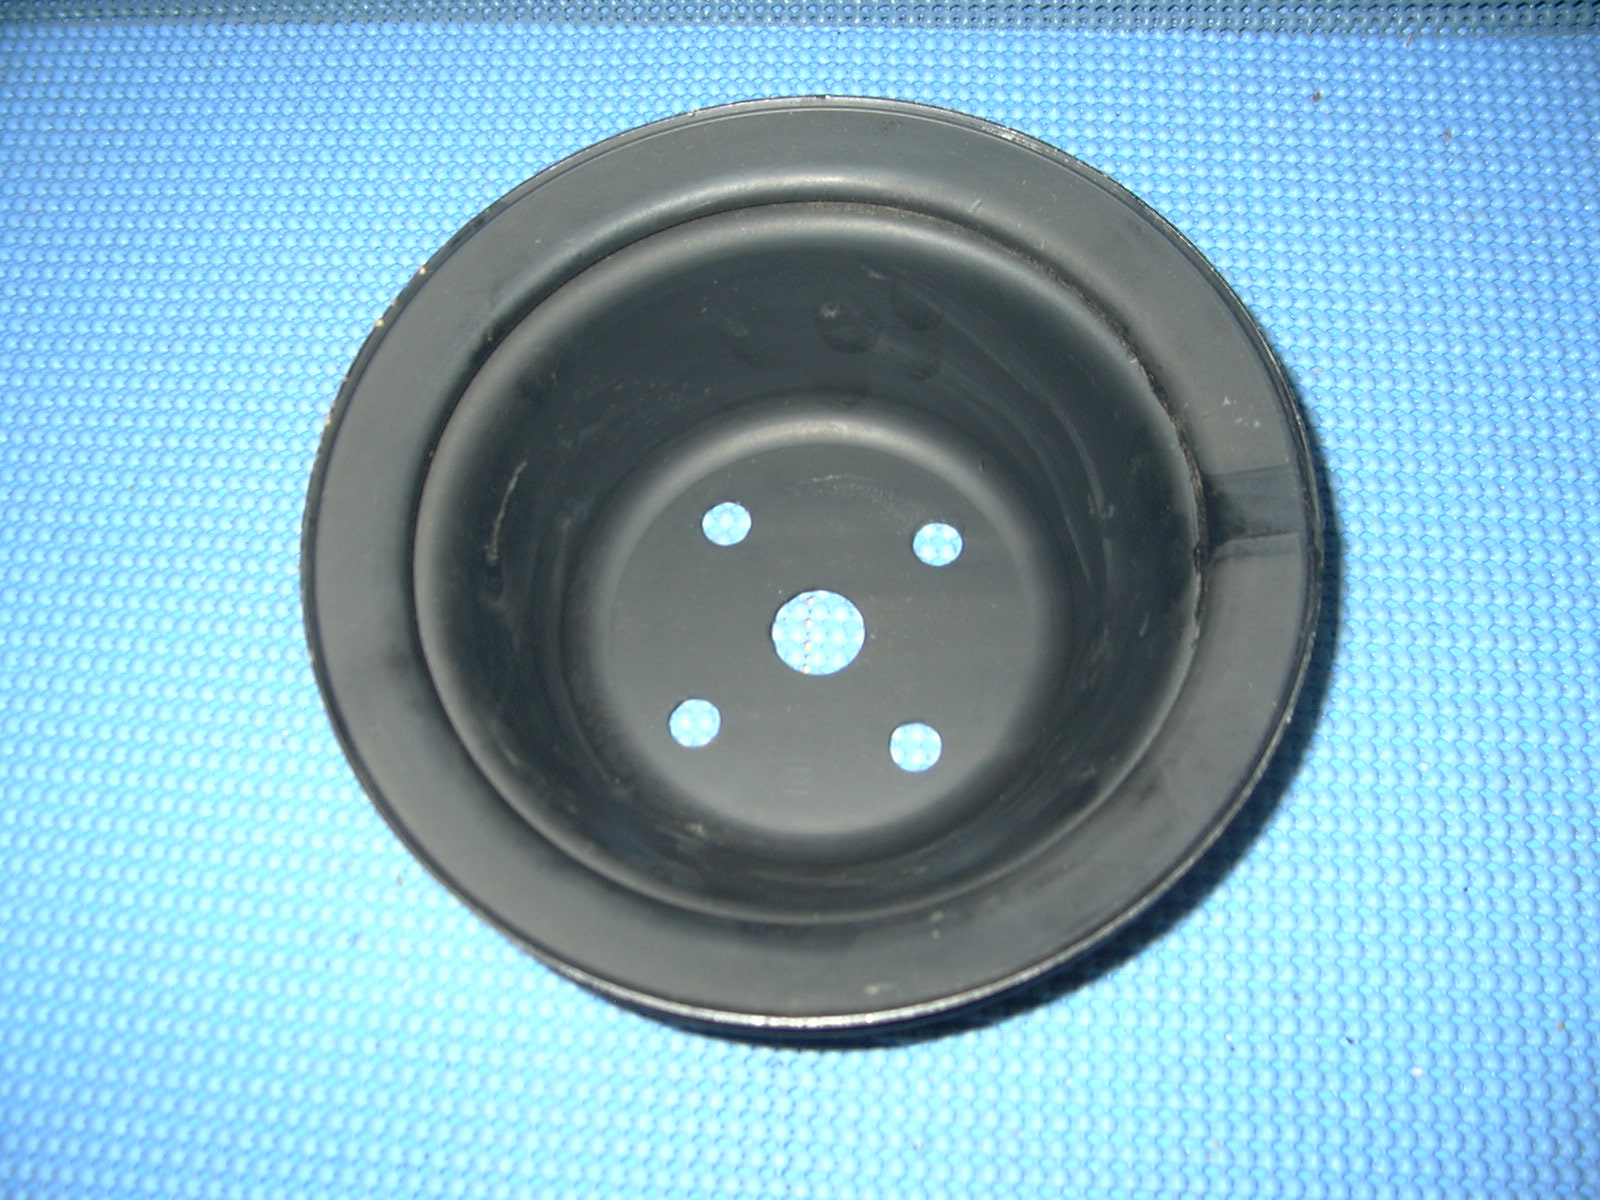 hight resolution of 1958 1959 chevrolet truck water pump pulley nos 3742039